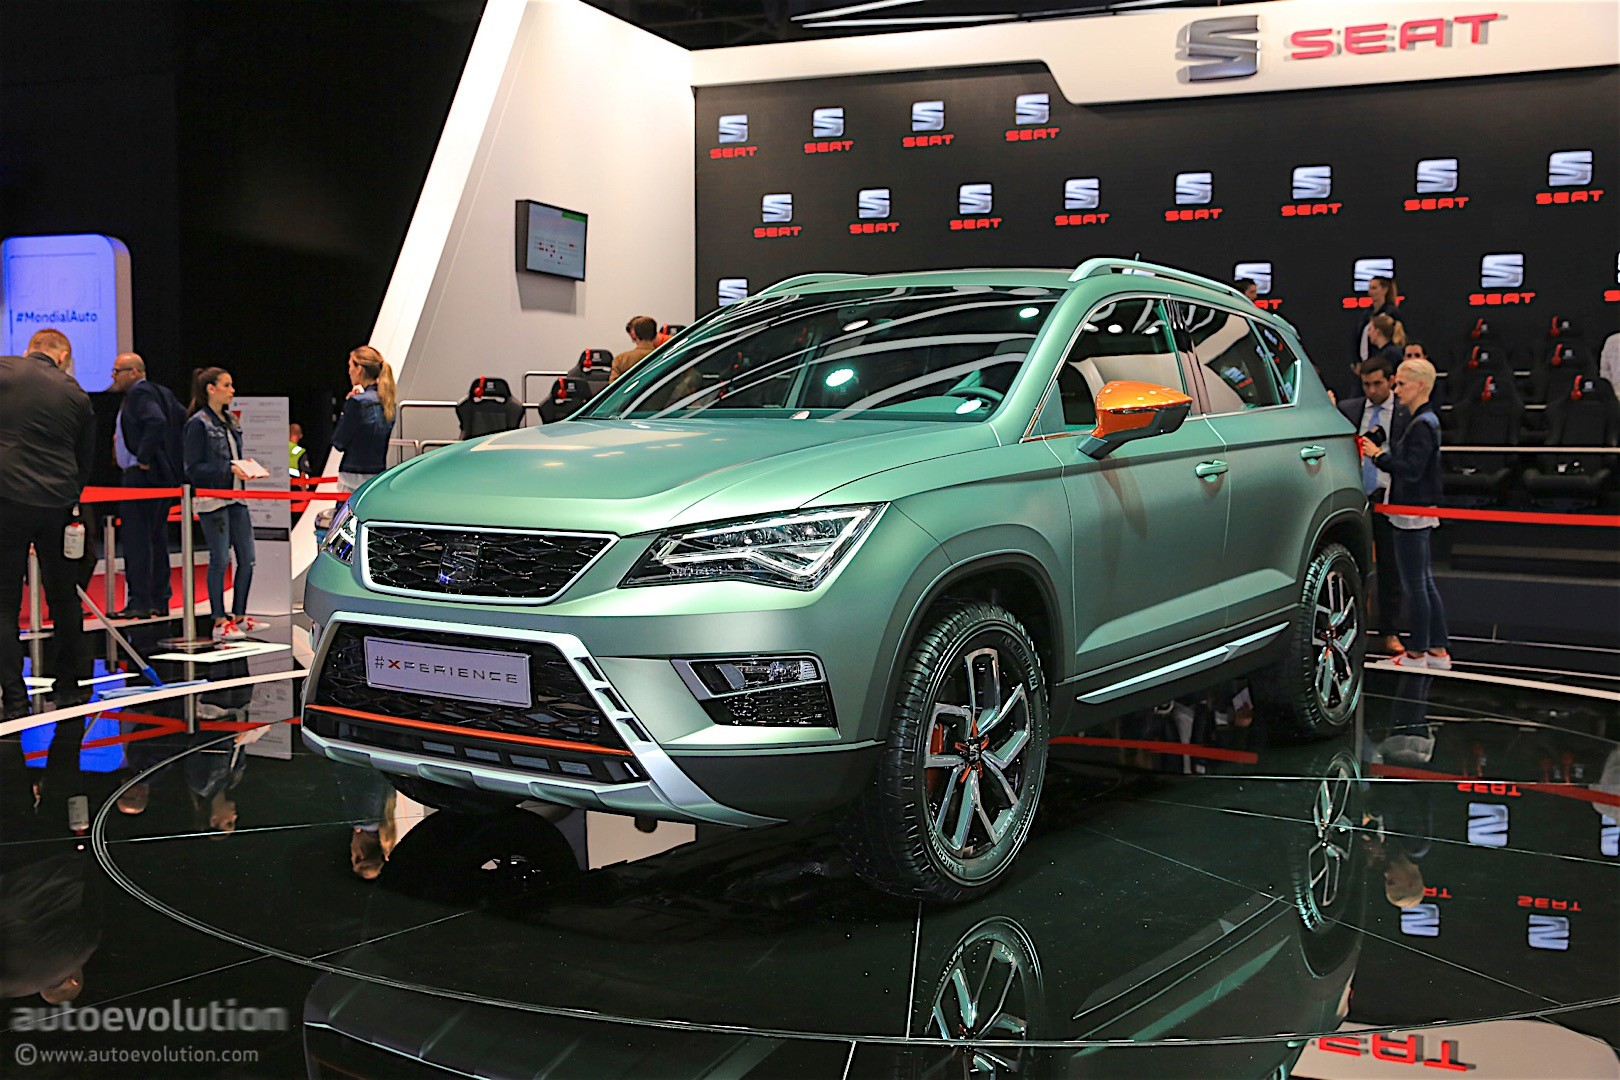 seat announces 2017 offensive in paris new ibiza arona crossover and leon face autoevolution. Black Bedroom Furniture Sets. Home Design Ideas